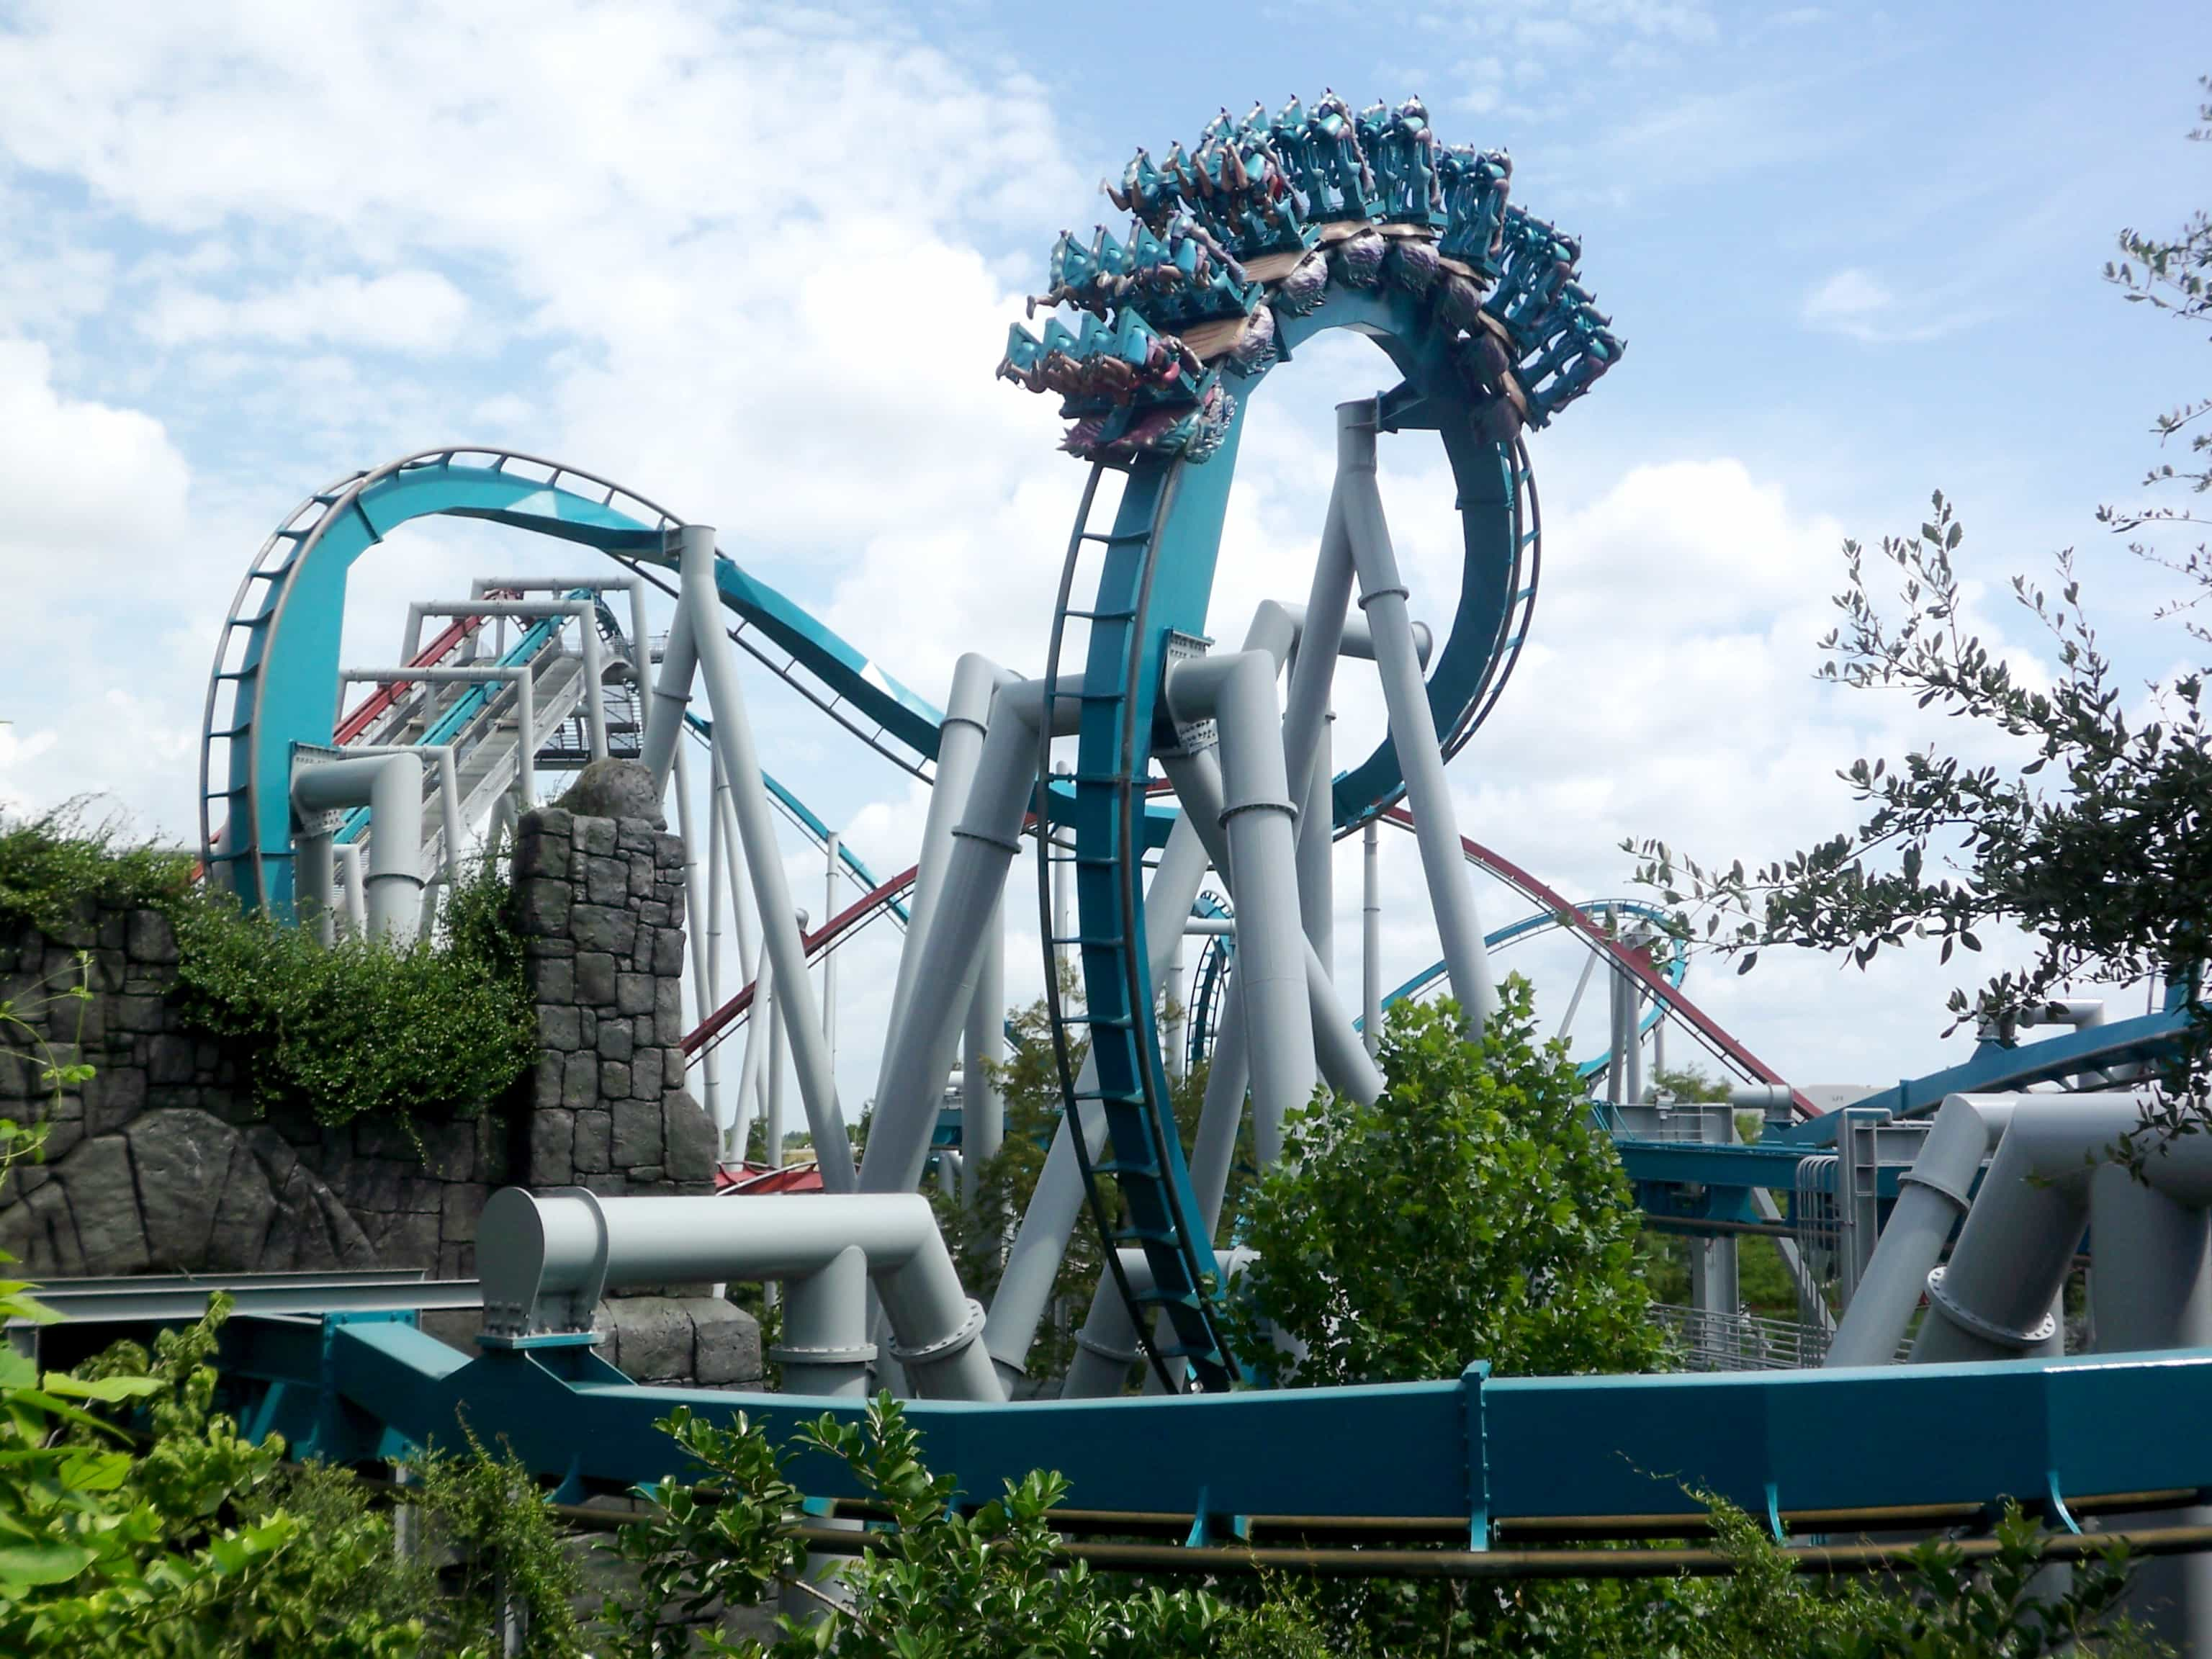 Universal orlando announces new harry potter coaster replacing dragon challenge closing harry potter coaster ccuart Choice Image